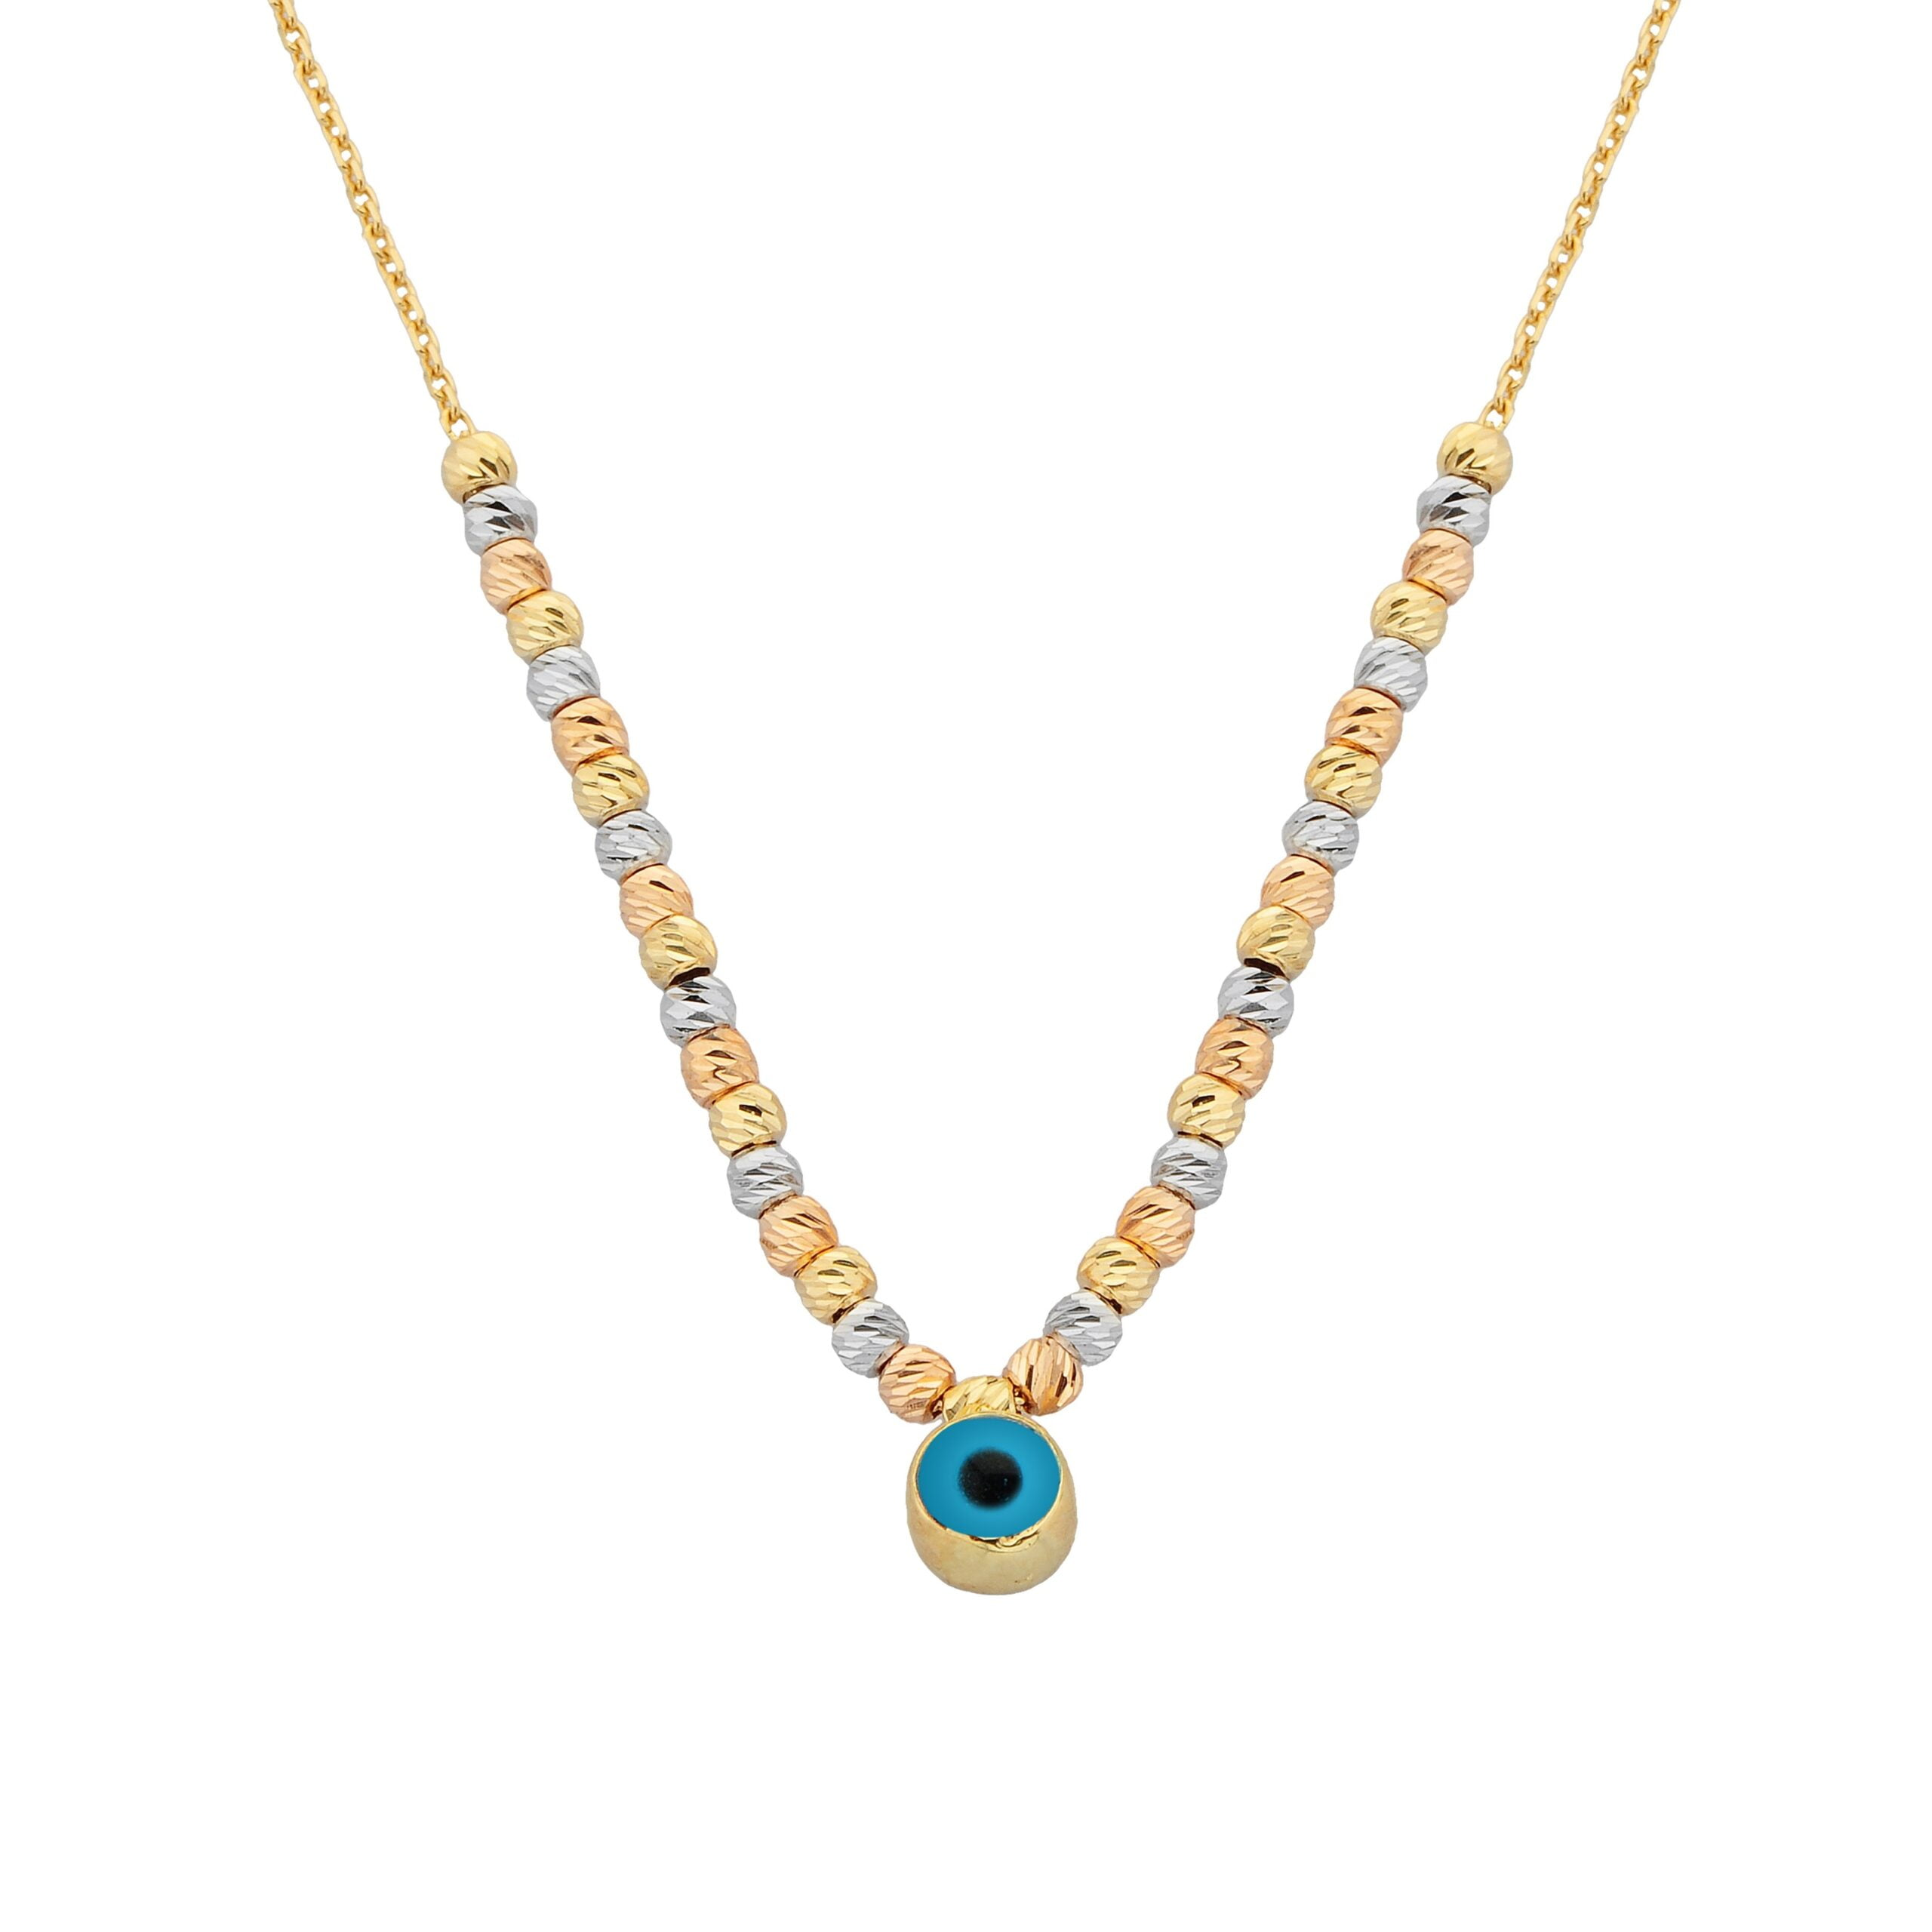 Two Sided Evil Eye with Italian Balls Pendant Necklace for Women 14K Real Solid Gold Birthday Mother's Day Christmas Gift